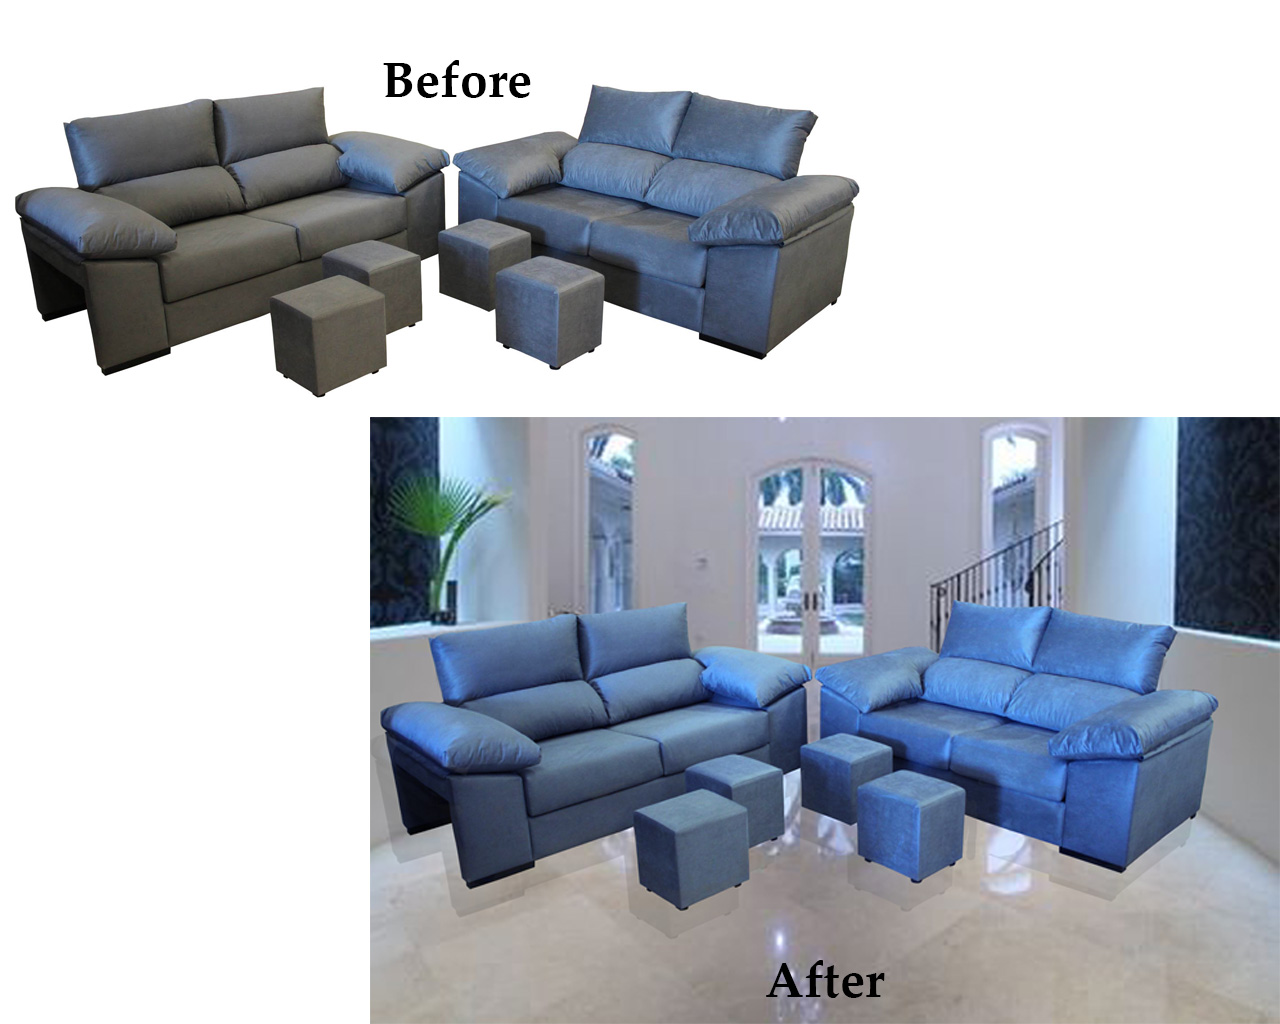 I will do background remove, retouch and resize